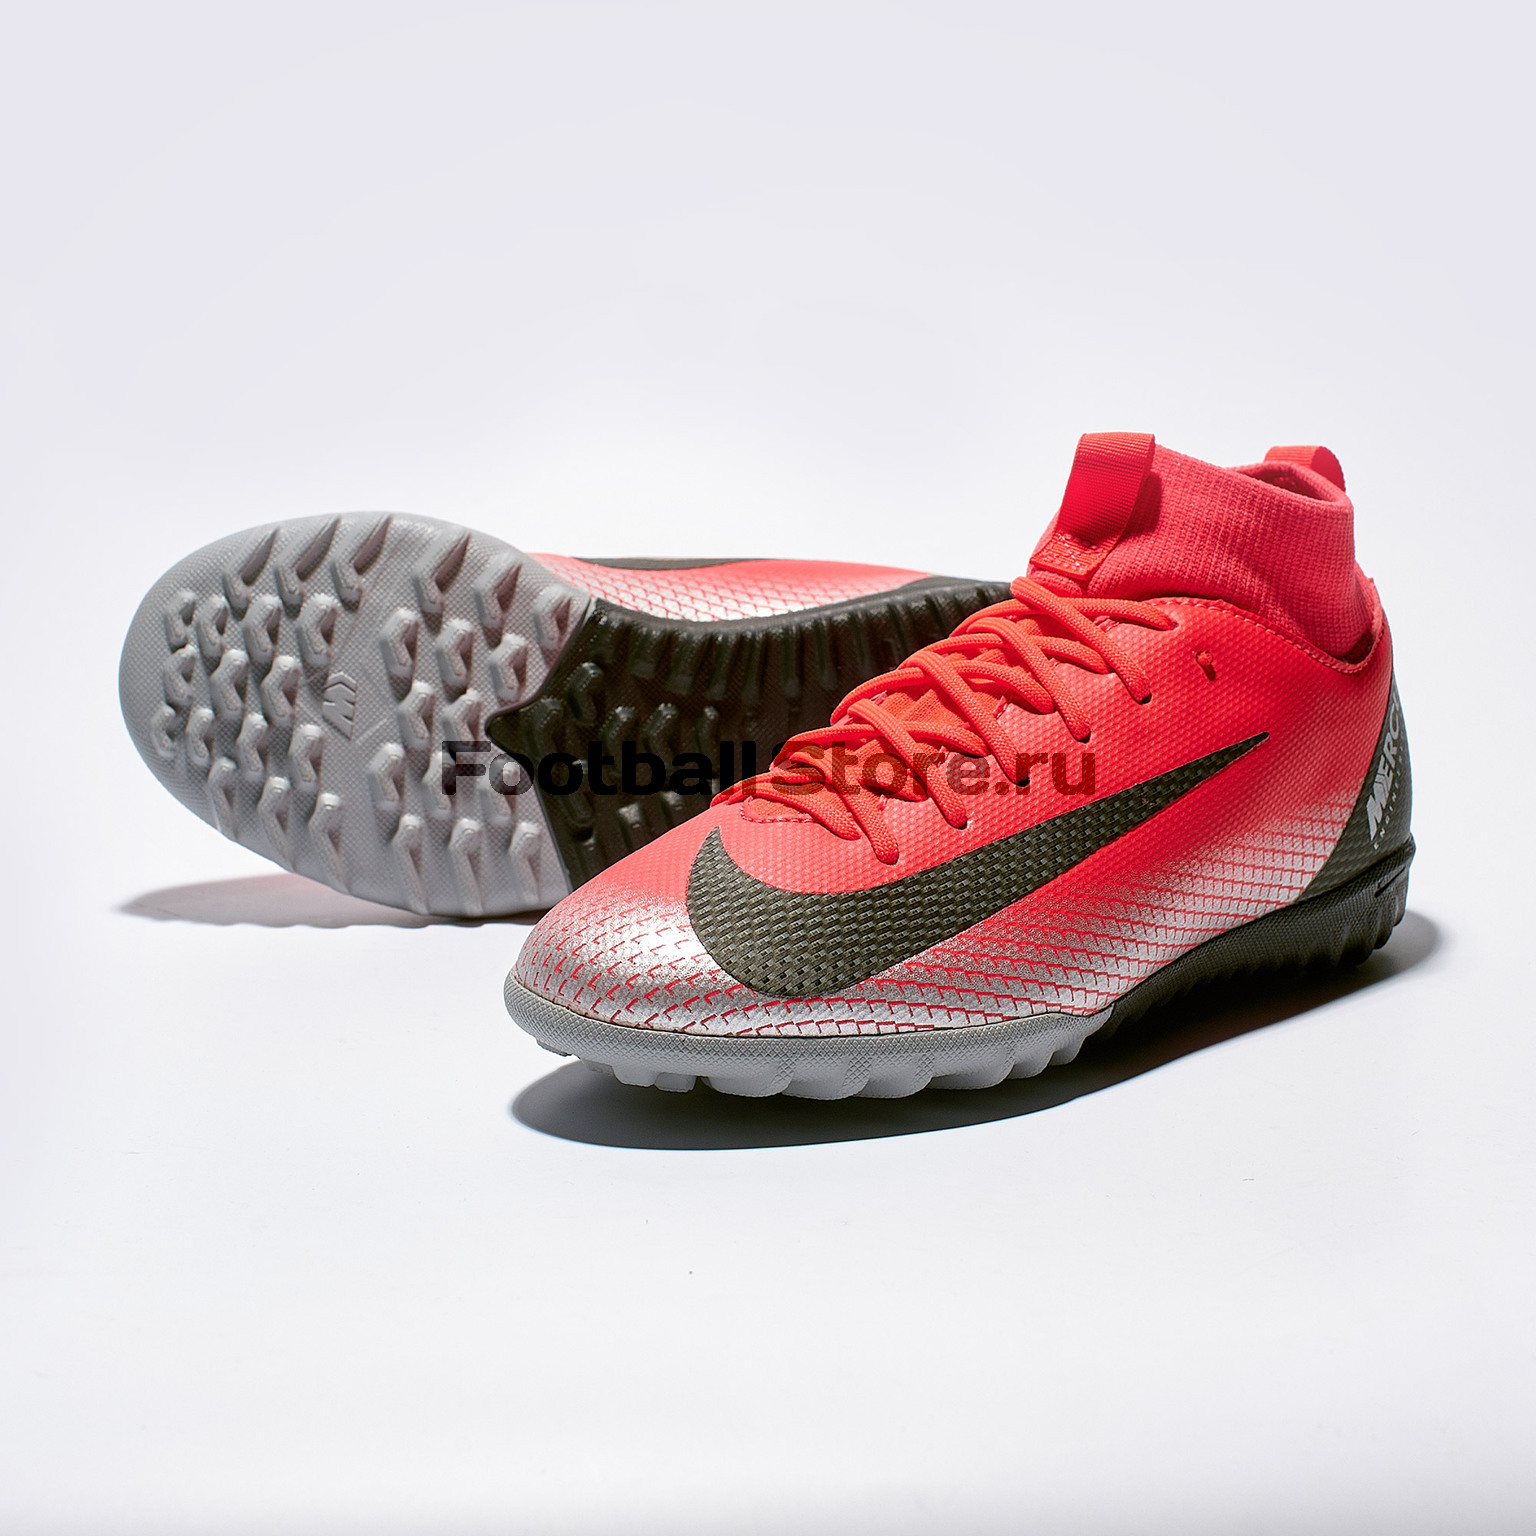 Шиповки детские Nike Superfly 6 Academy GS CR7 TF AJ3112-600 бутсы детские nike superfly academy gs cr7 fg mg aj3111 600